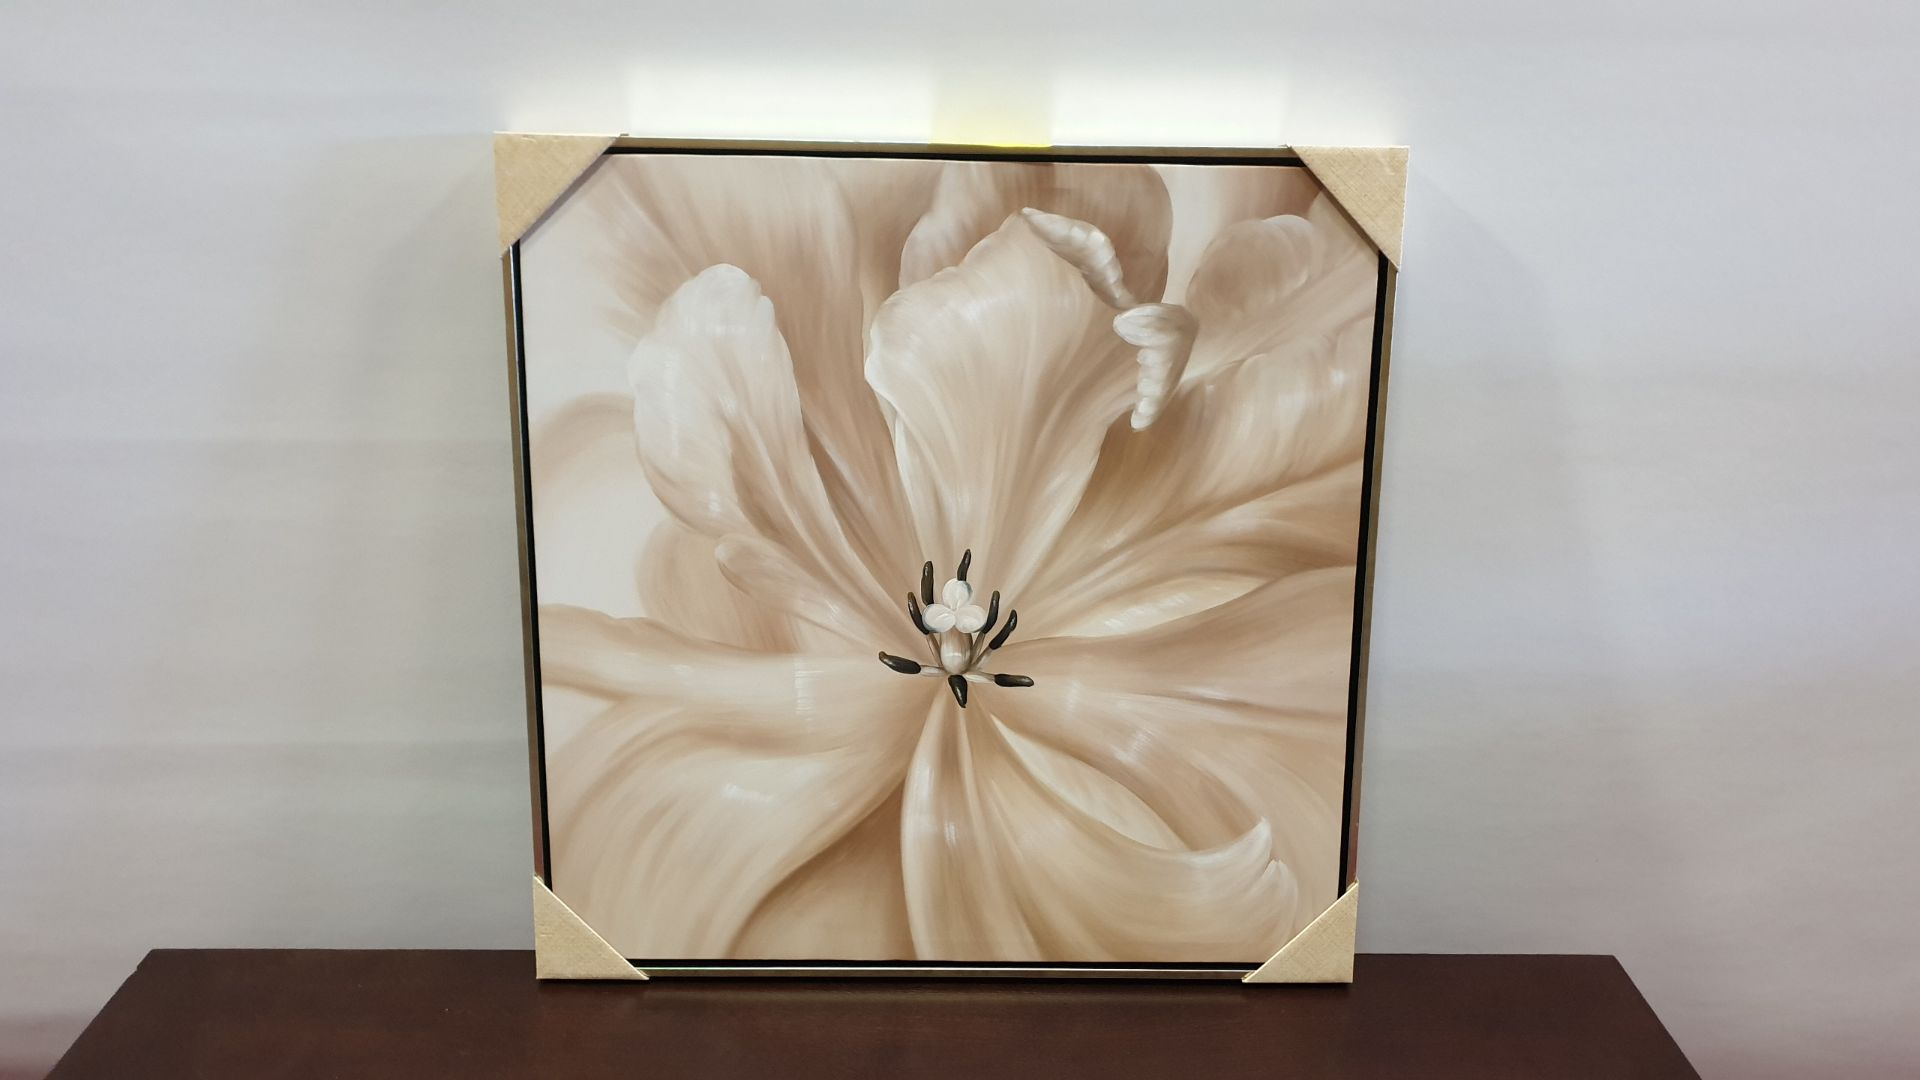 Lot 205 - FRAMED CANVAS FLORAL PICTURE SIZE 730 X 730 X 40 MM RRP £100